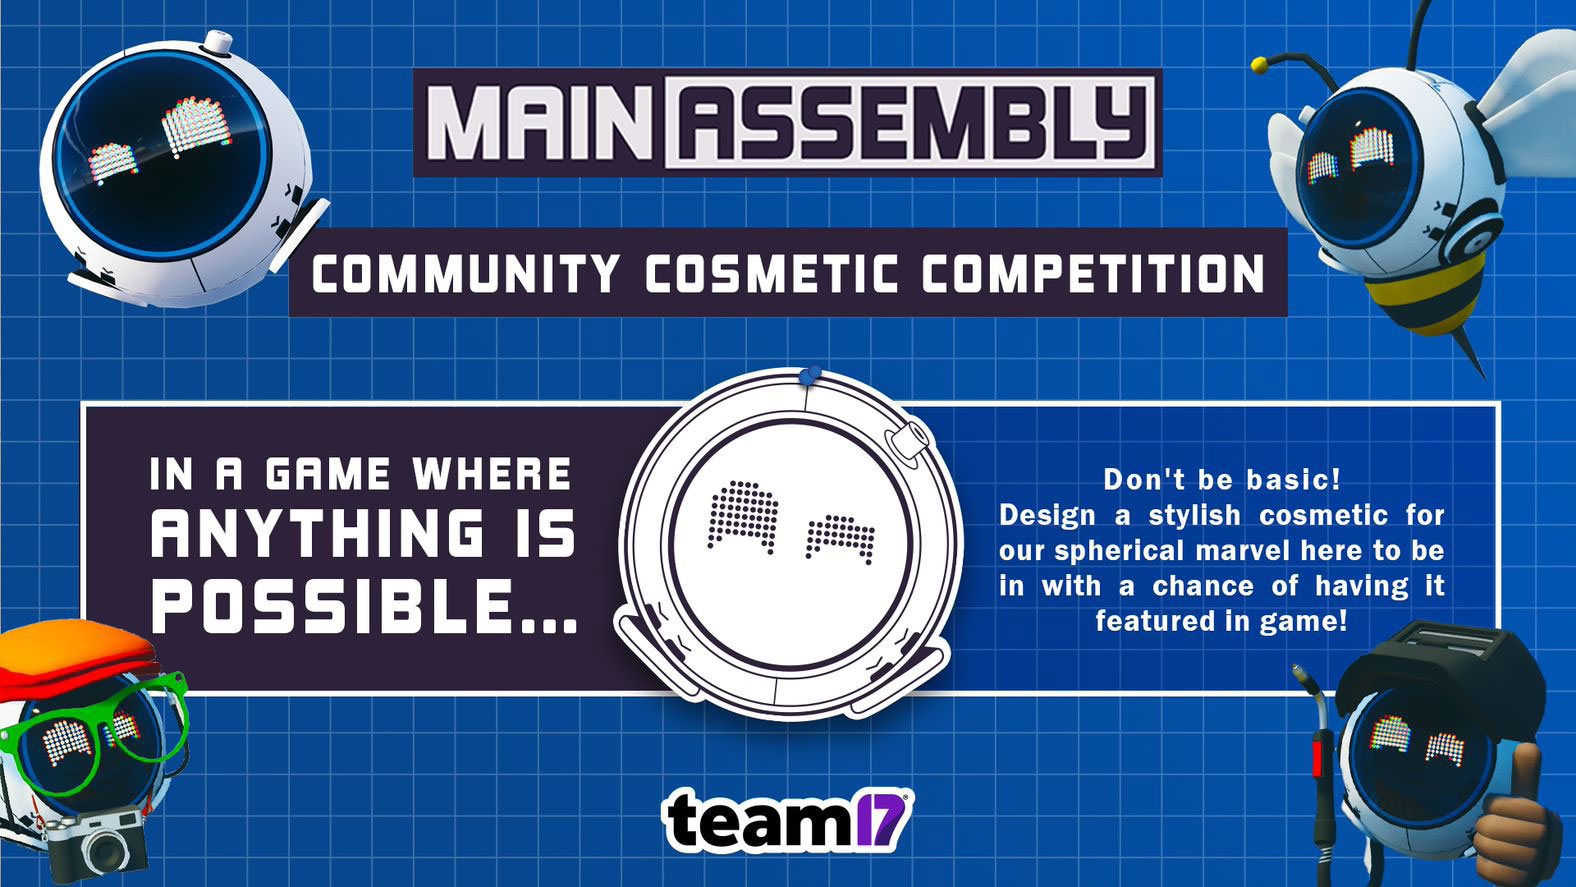 Main Assembly Community Cosmetic Competition!